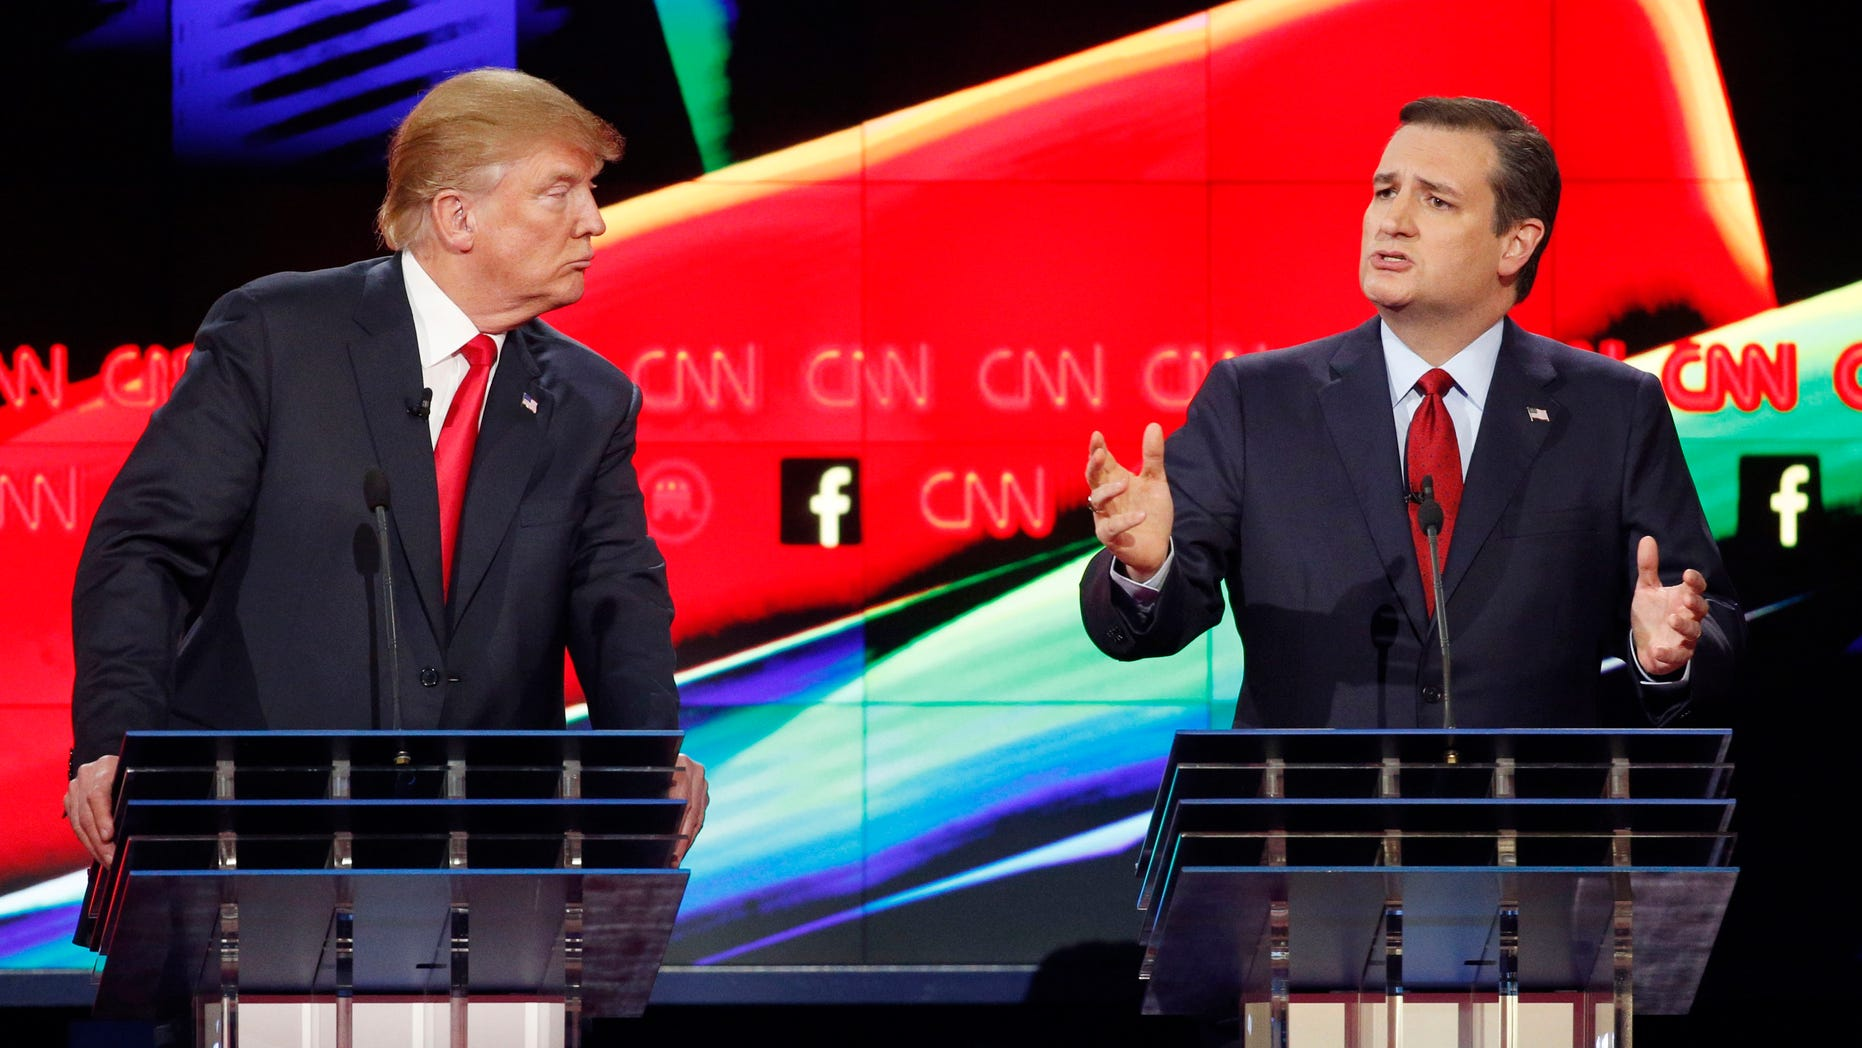 In this Dec. 15, 2015 photo, Donald Trump, left, watches as Ted Cruz speaks during the CNN Republican presidential debate at the Venetian Hotel & Casino in Las Vegas. A growing debate over Americaâs role in promoting regime change in the Middle East is creating unusual alliances among 2016 presidential candidates that cross party lines.  (AP Photo/John Locher)